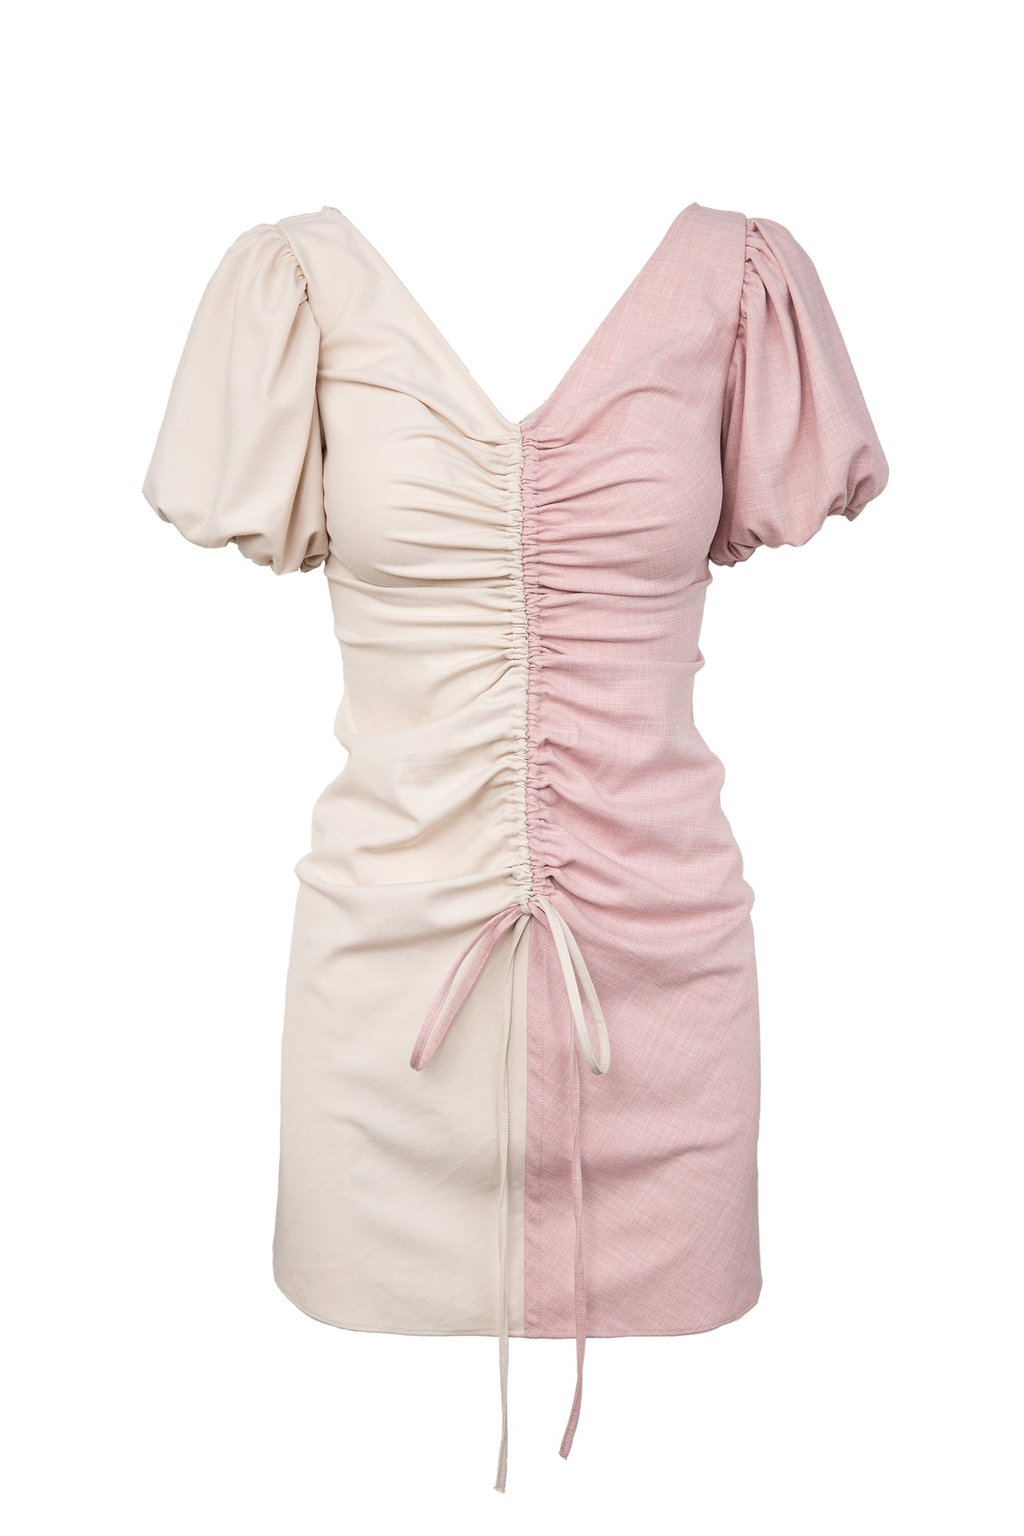 Two Toned Tammy Dress by J.ING women's clothing